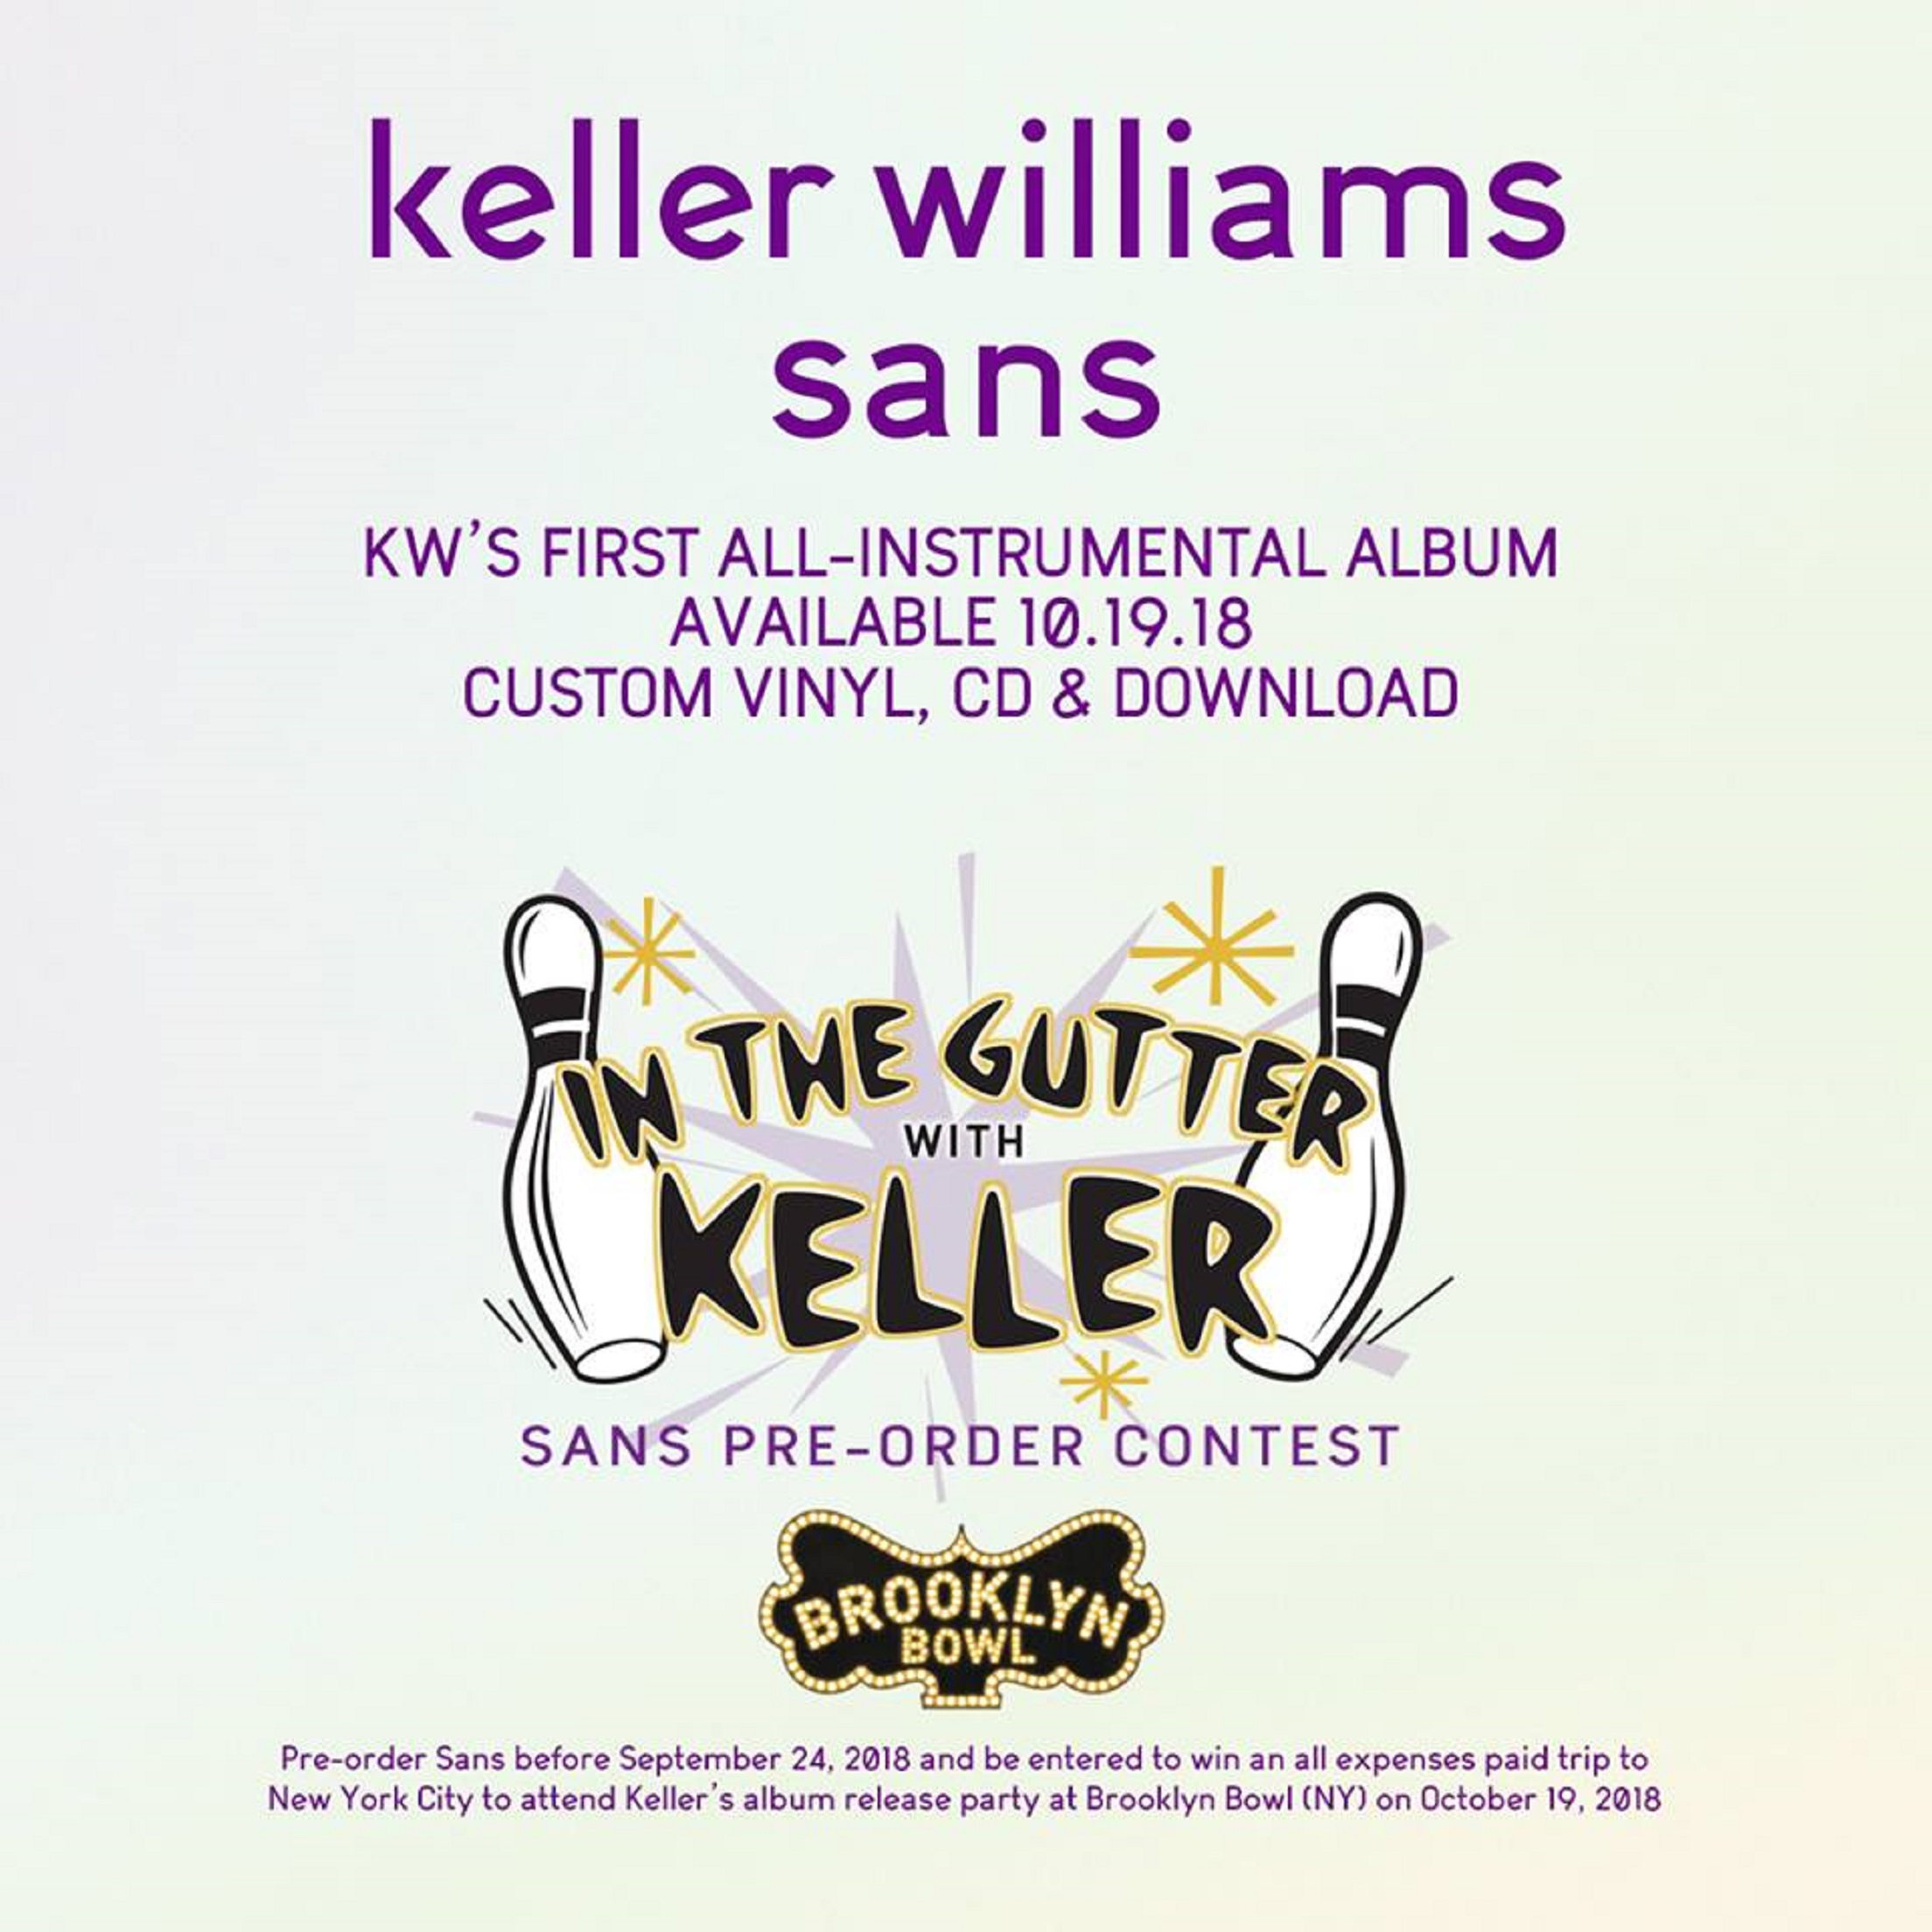 Keller Williams Announces First Instrumental Album SANS Out October 19th